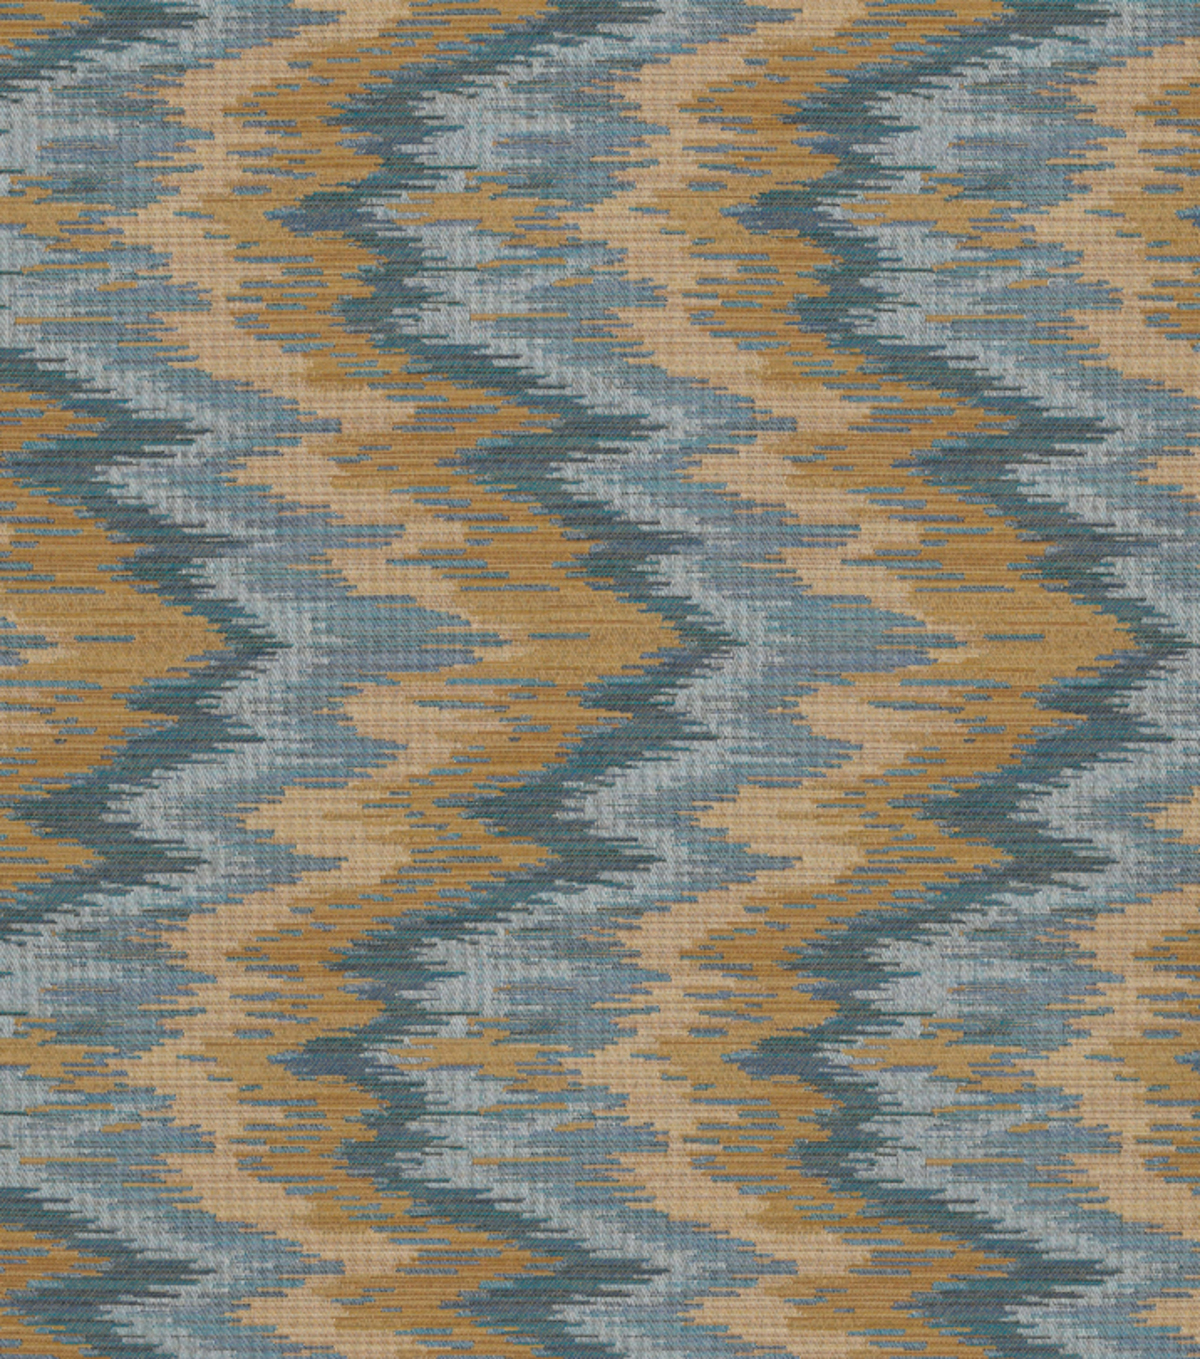 Home Decor 8\u0022x8\u0022 Fabric Swatch-Aumont Way Ocean Blue